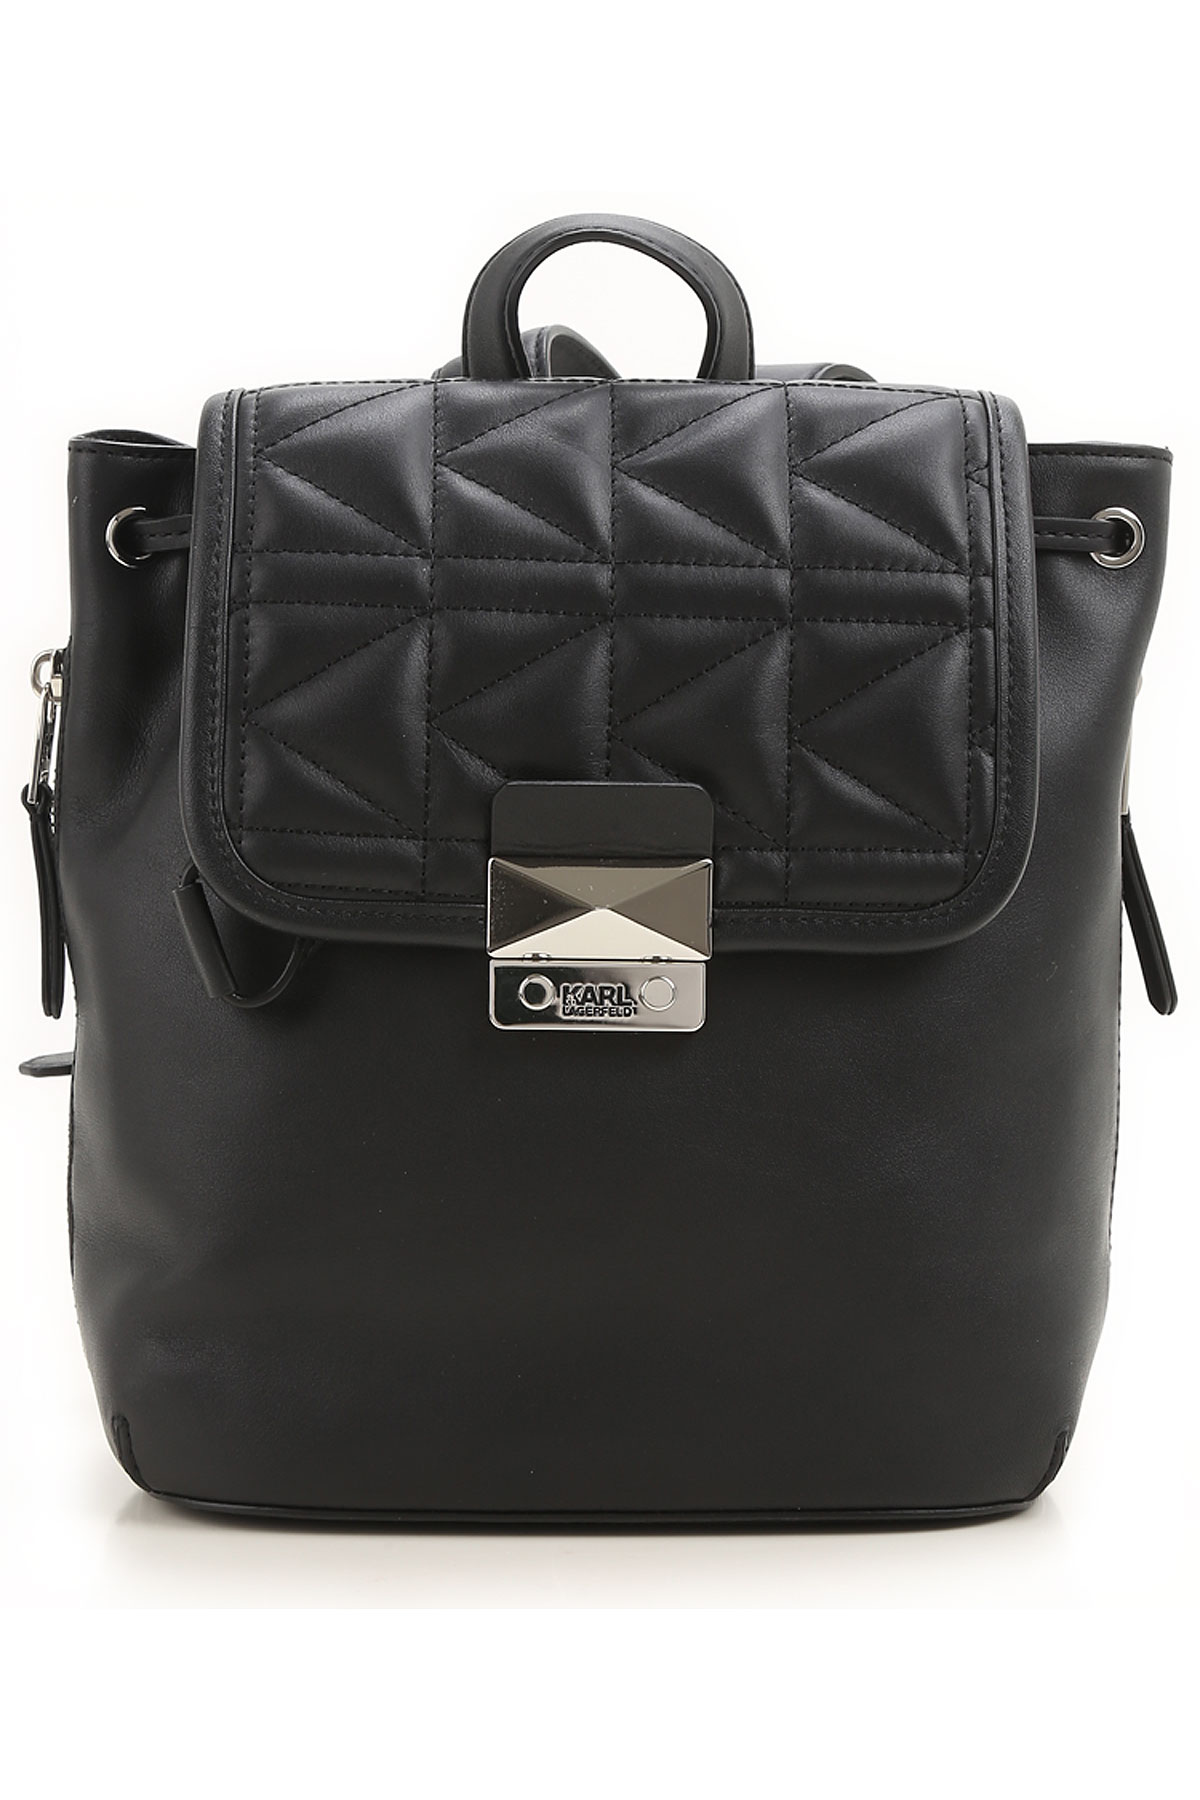 Image of Karl Lagerfeld Backpack for Women On Sale in Outlet, Black, Leather, 2017